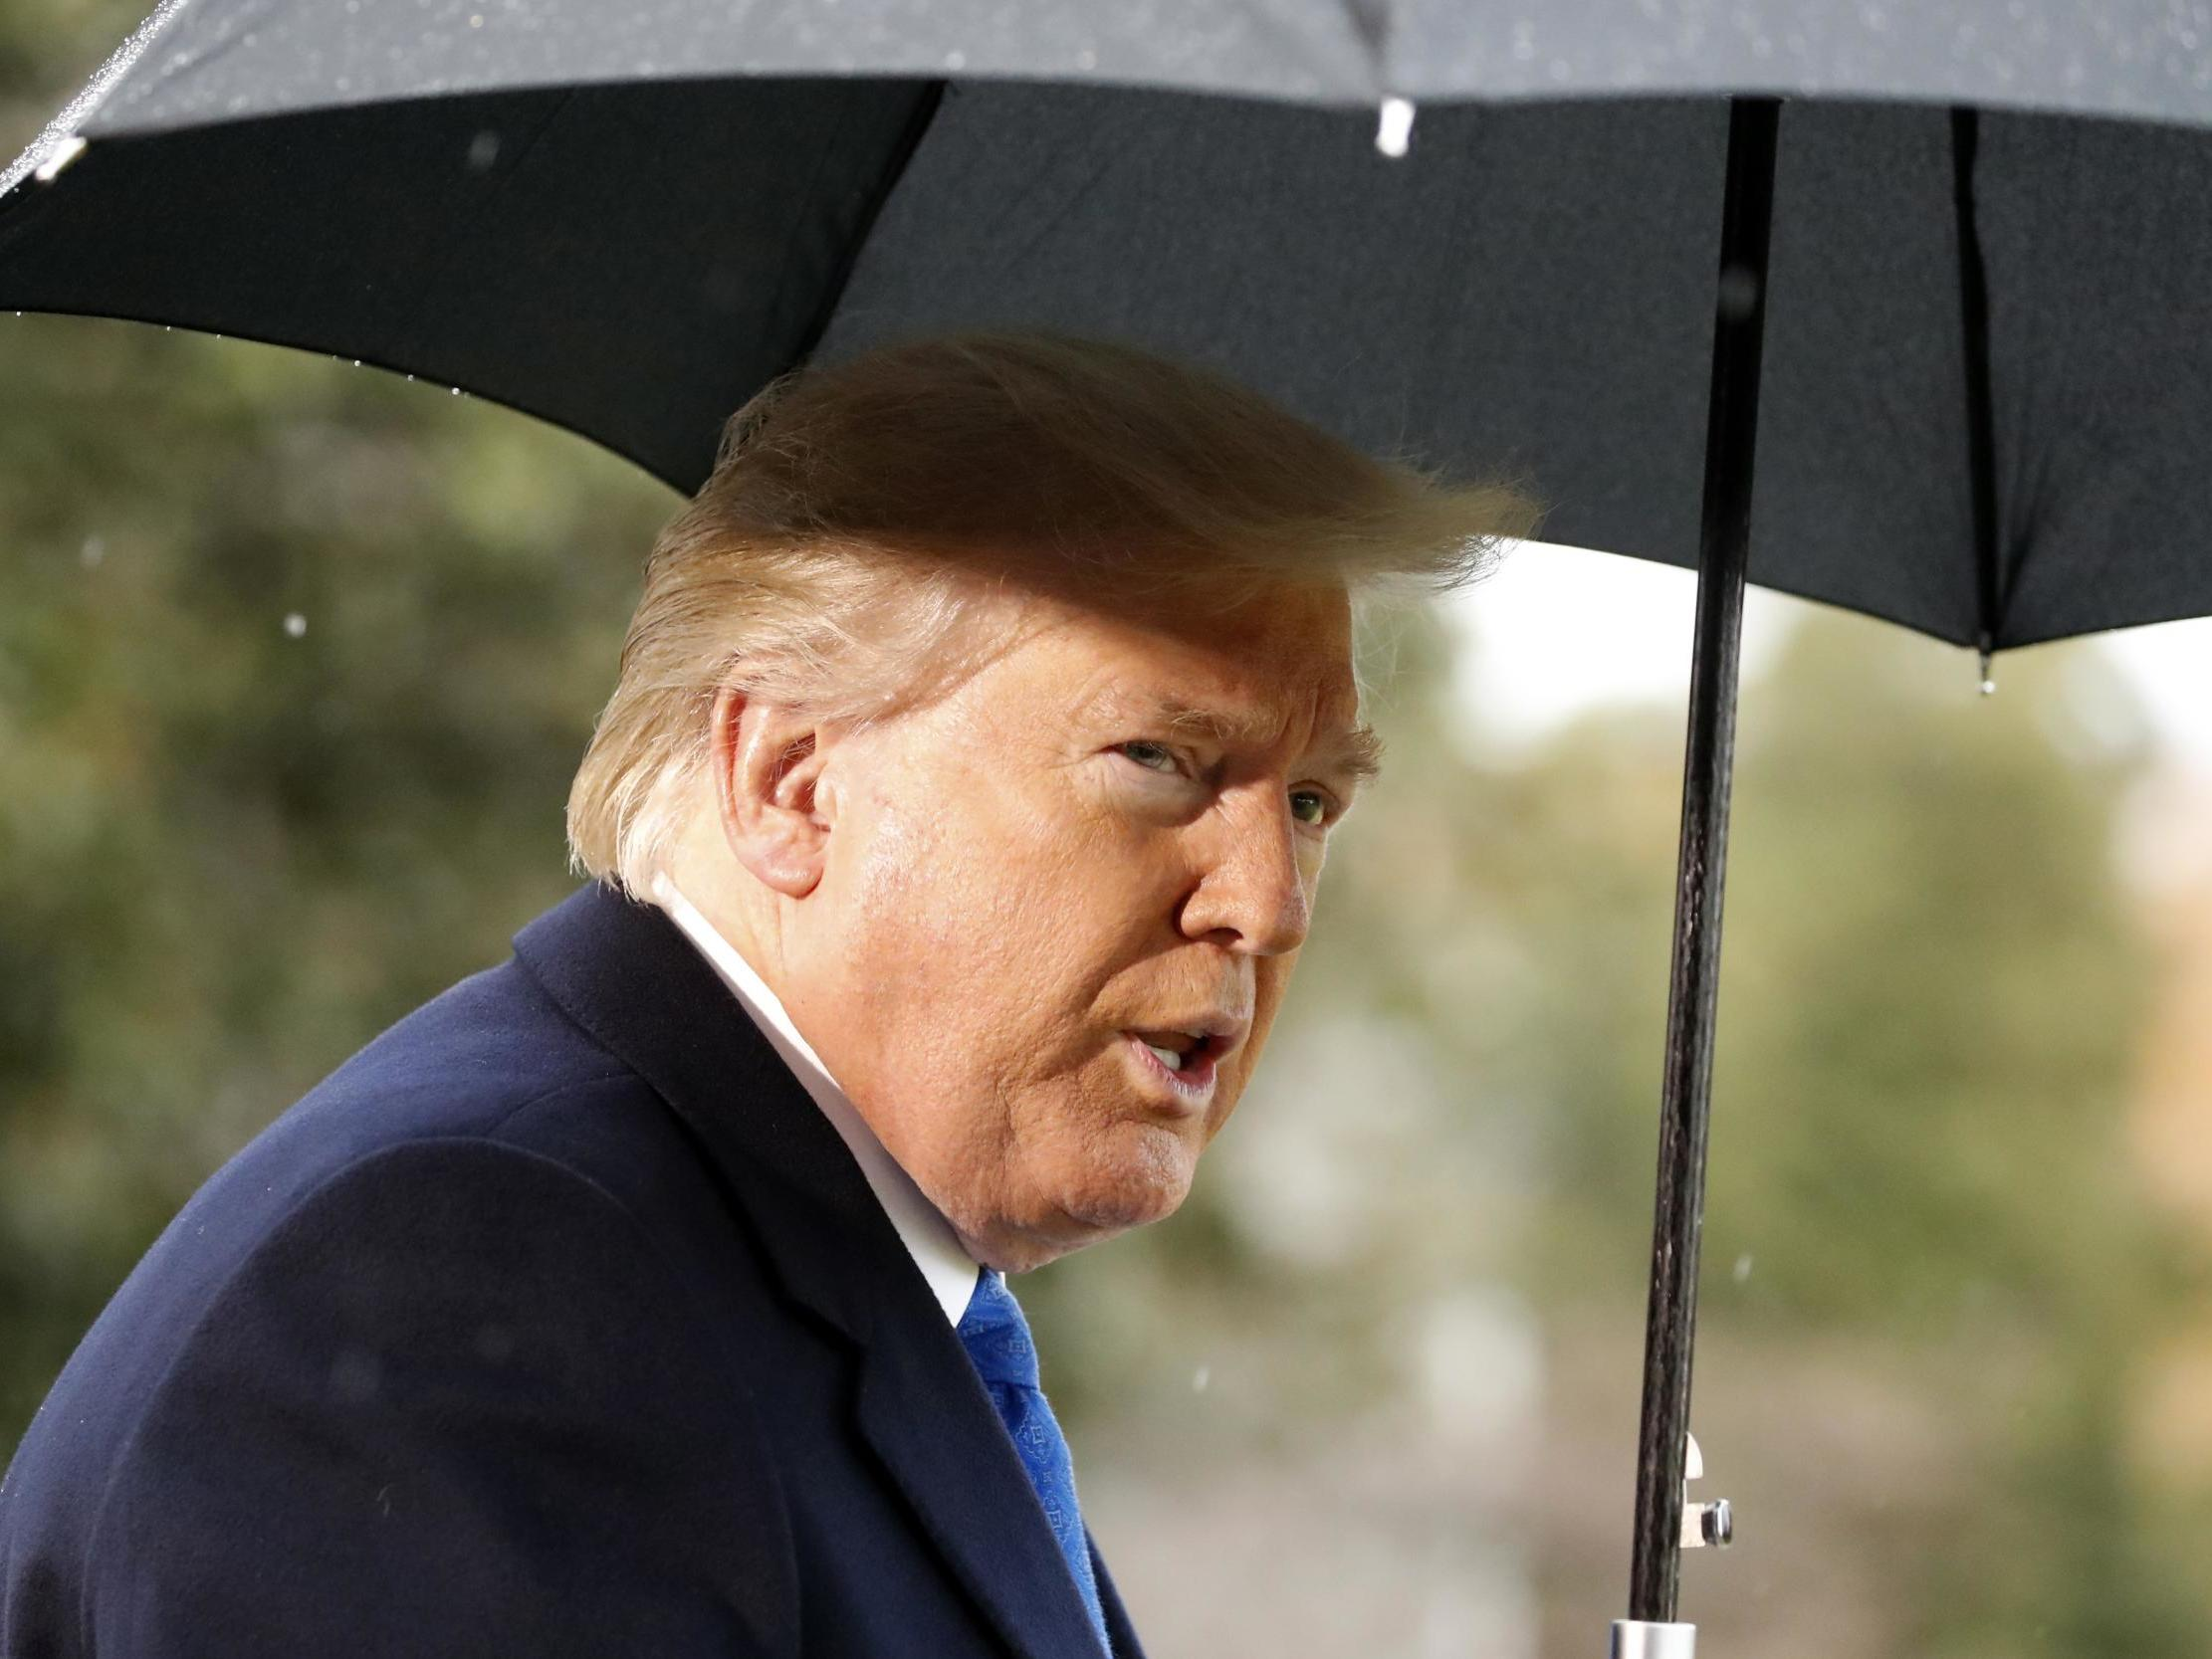 Trump impeachment news: Congress begins drawing up charges, as president hits back at former FBI lawyer before heading to UK for Nato summit